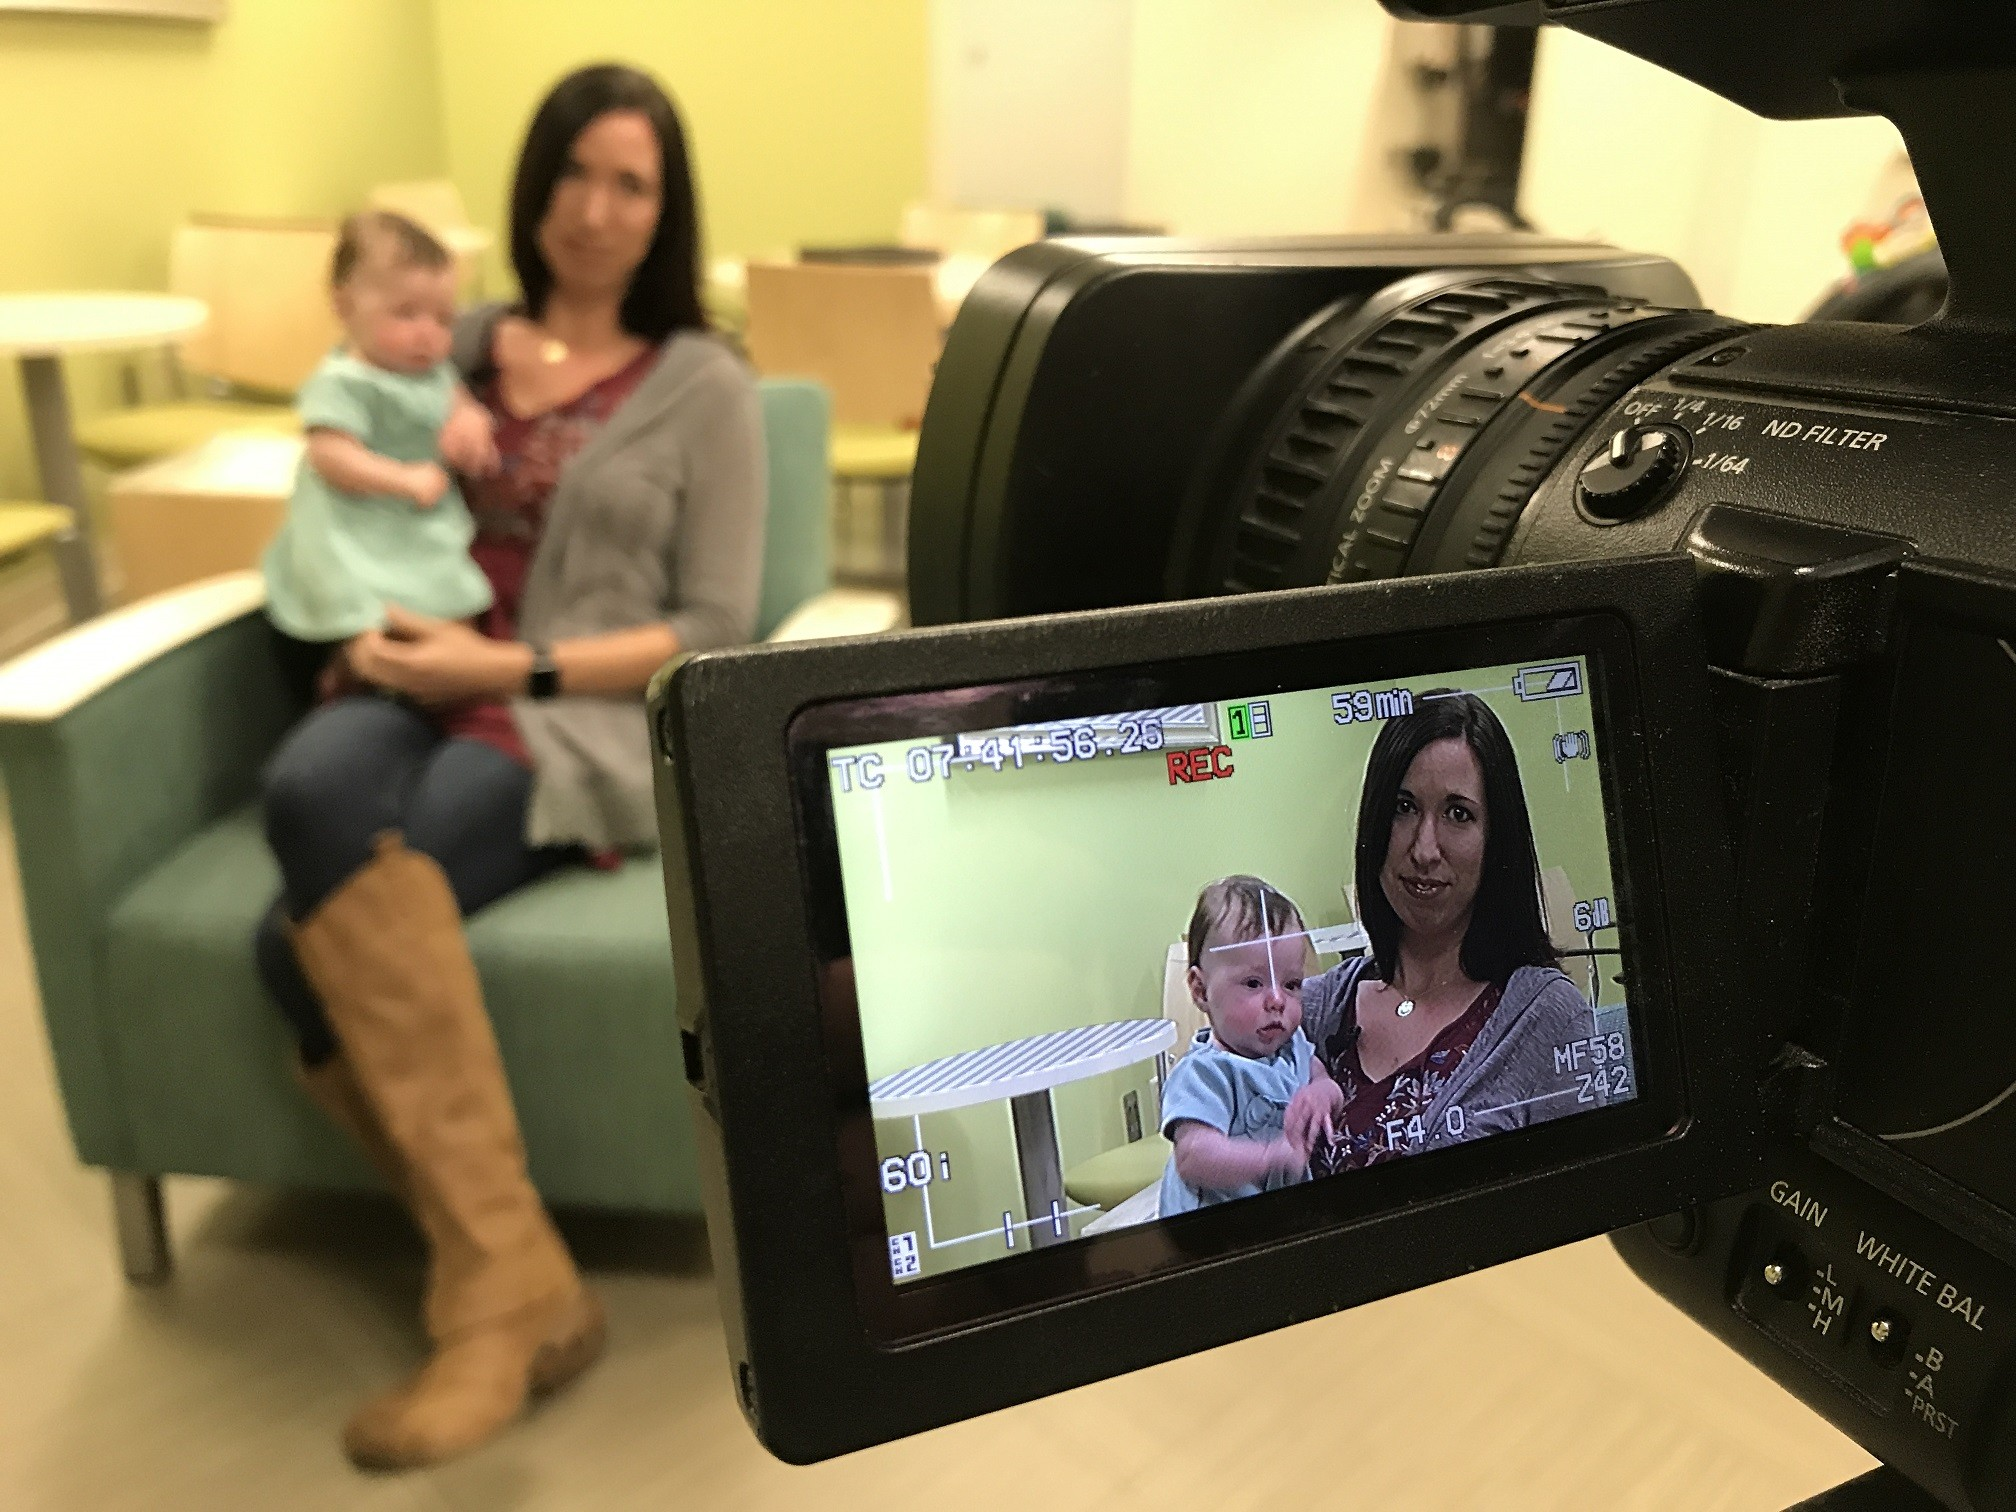 Labor and delivery nurse Heather Ulm and baby Adeline interview with KY3 News in Springfield, Missouri.